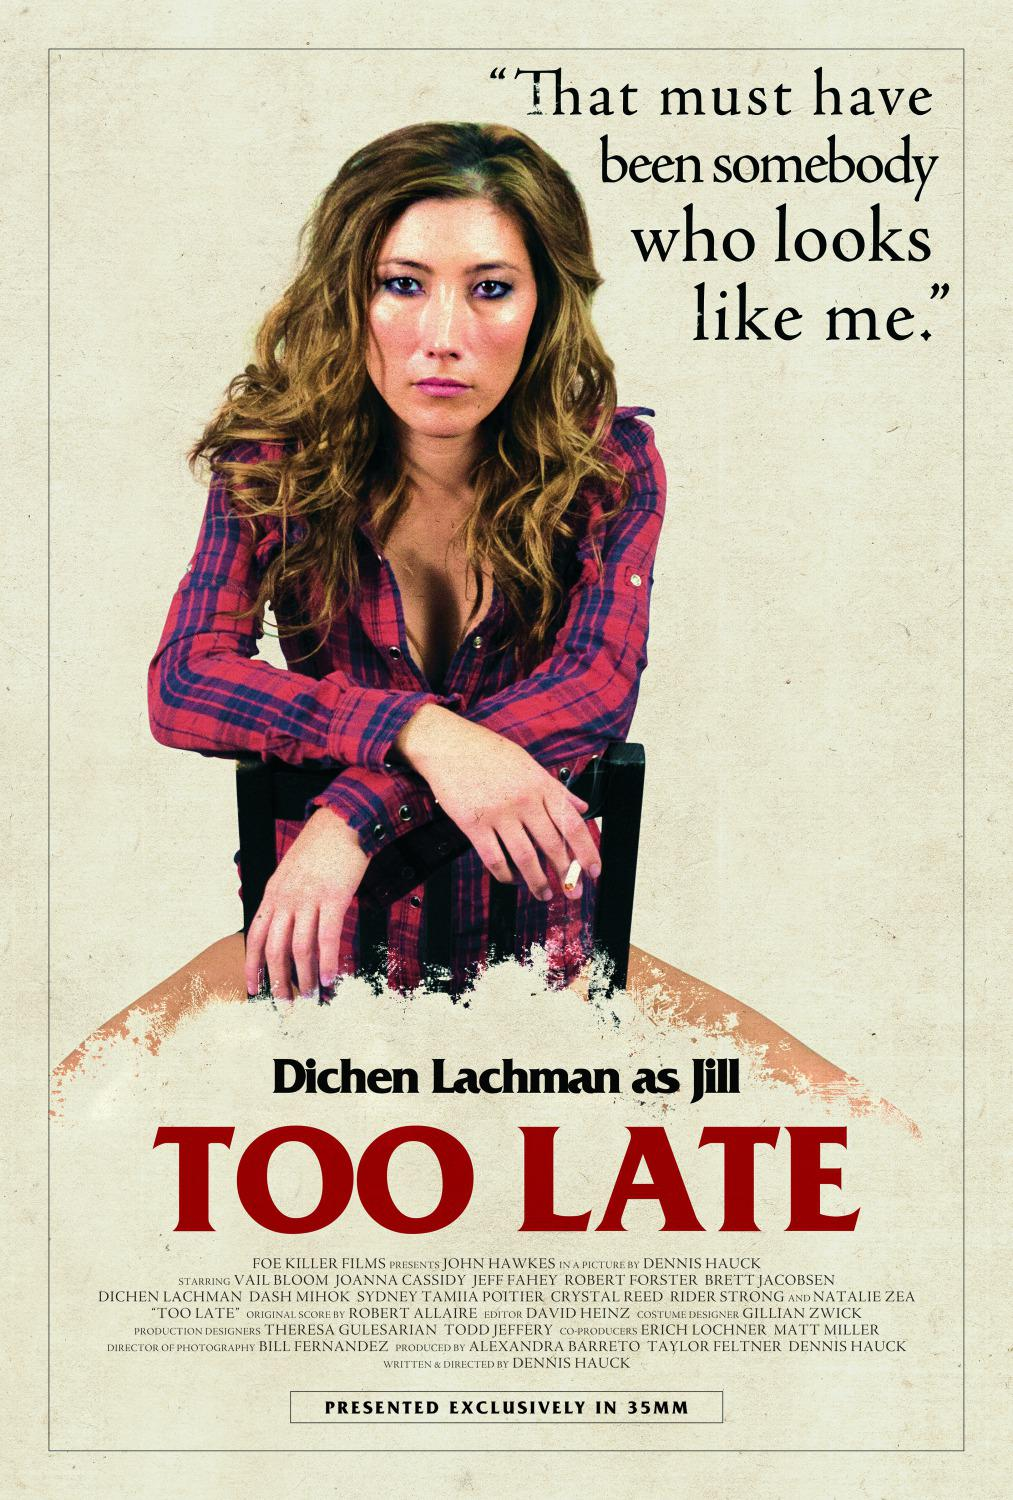 Troppo Tardi - Too Late - Dichen Lachman as Jill